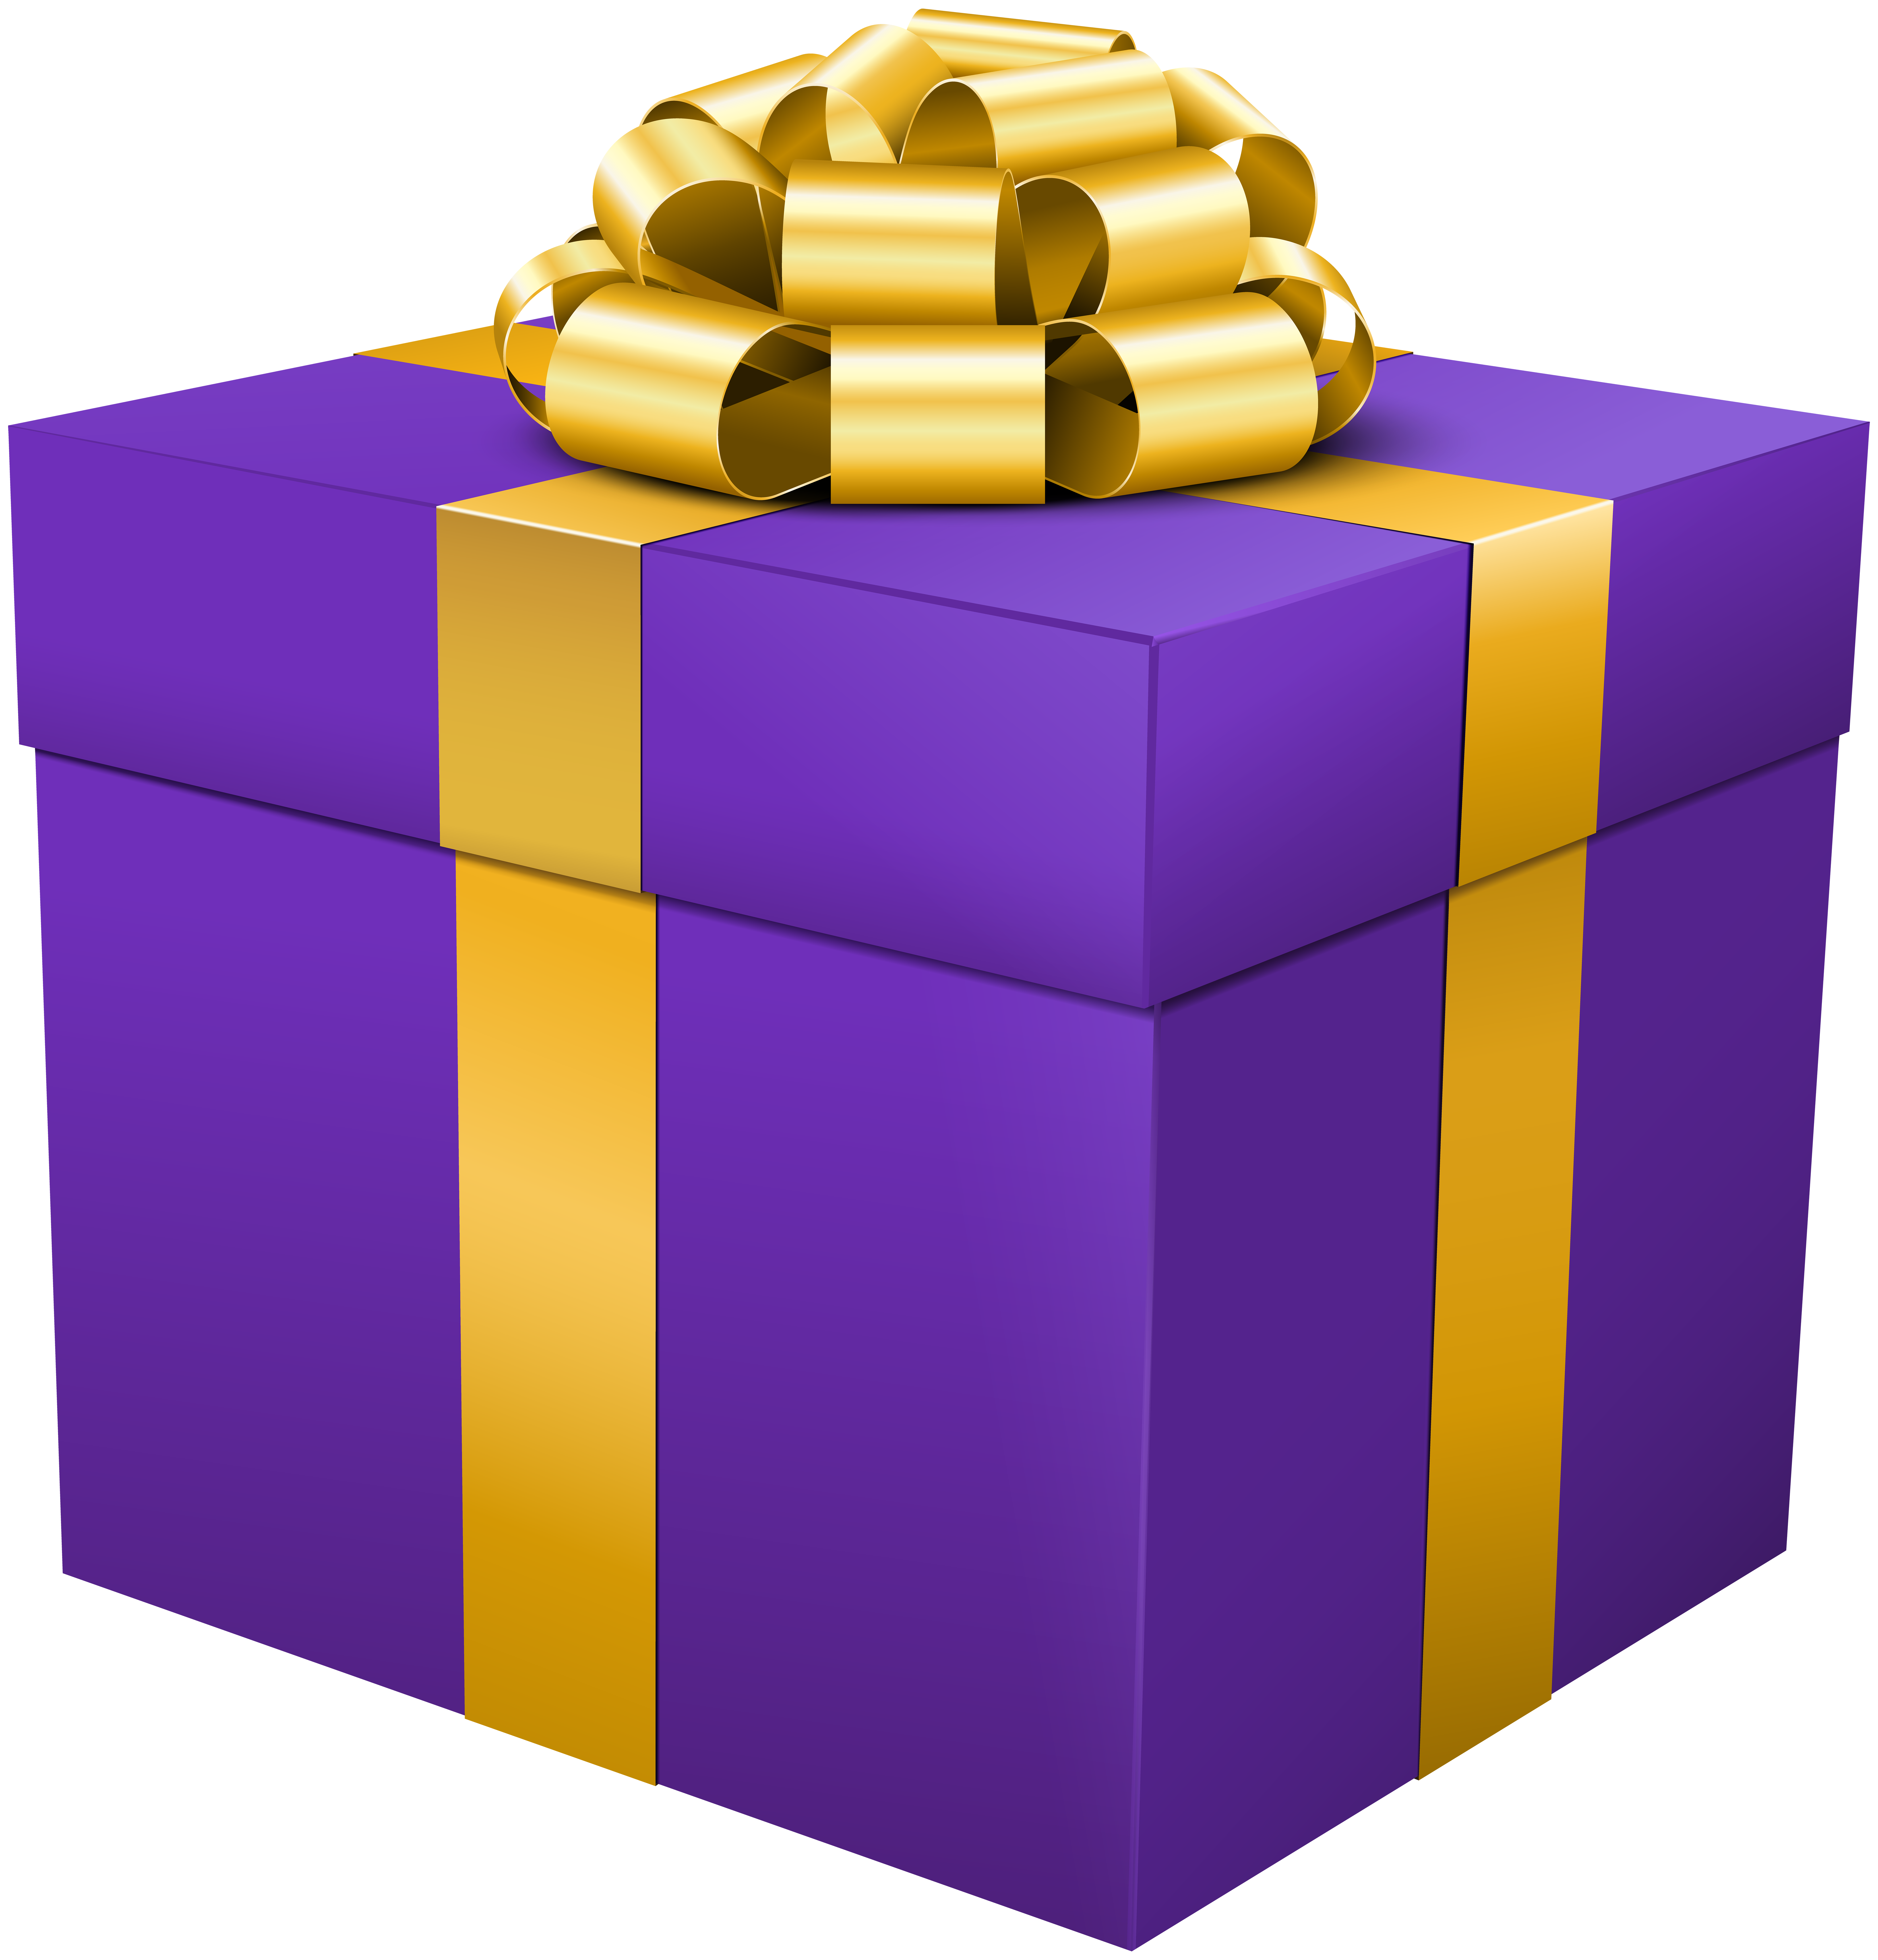 Gift clipart rectangle. Purple box png clip